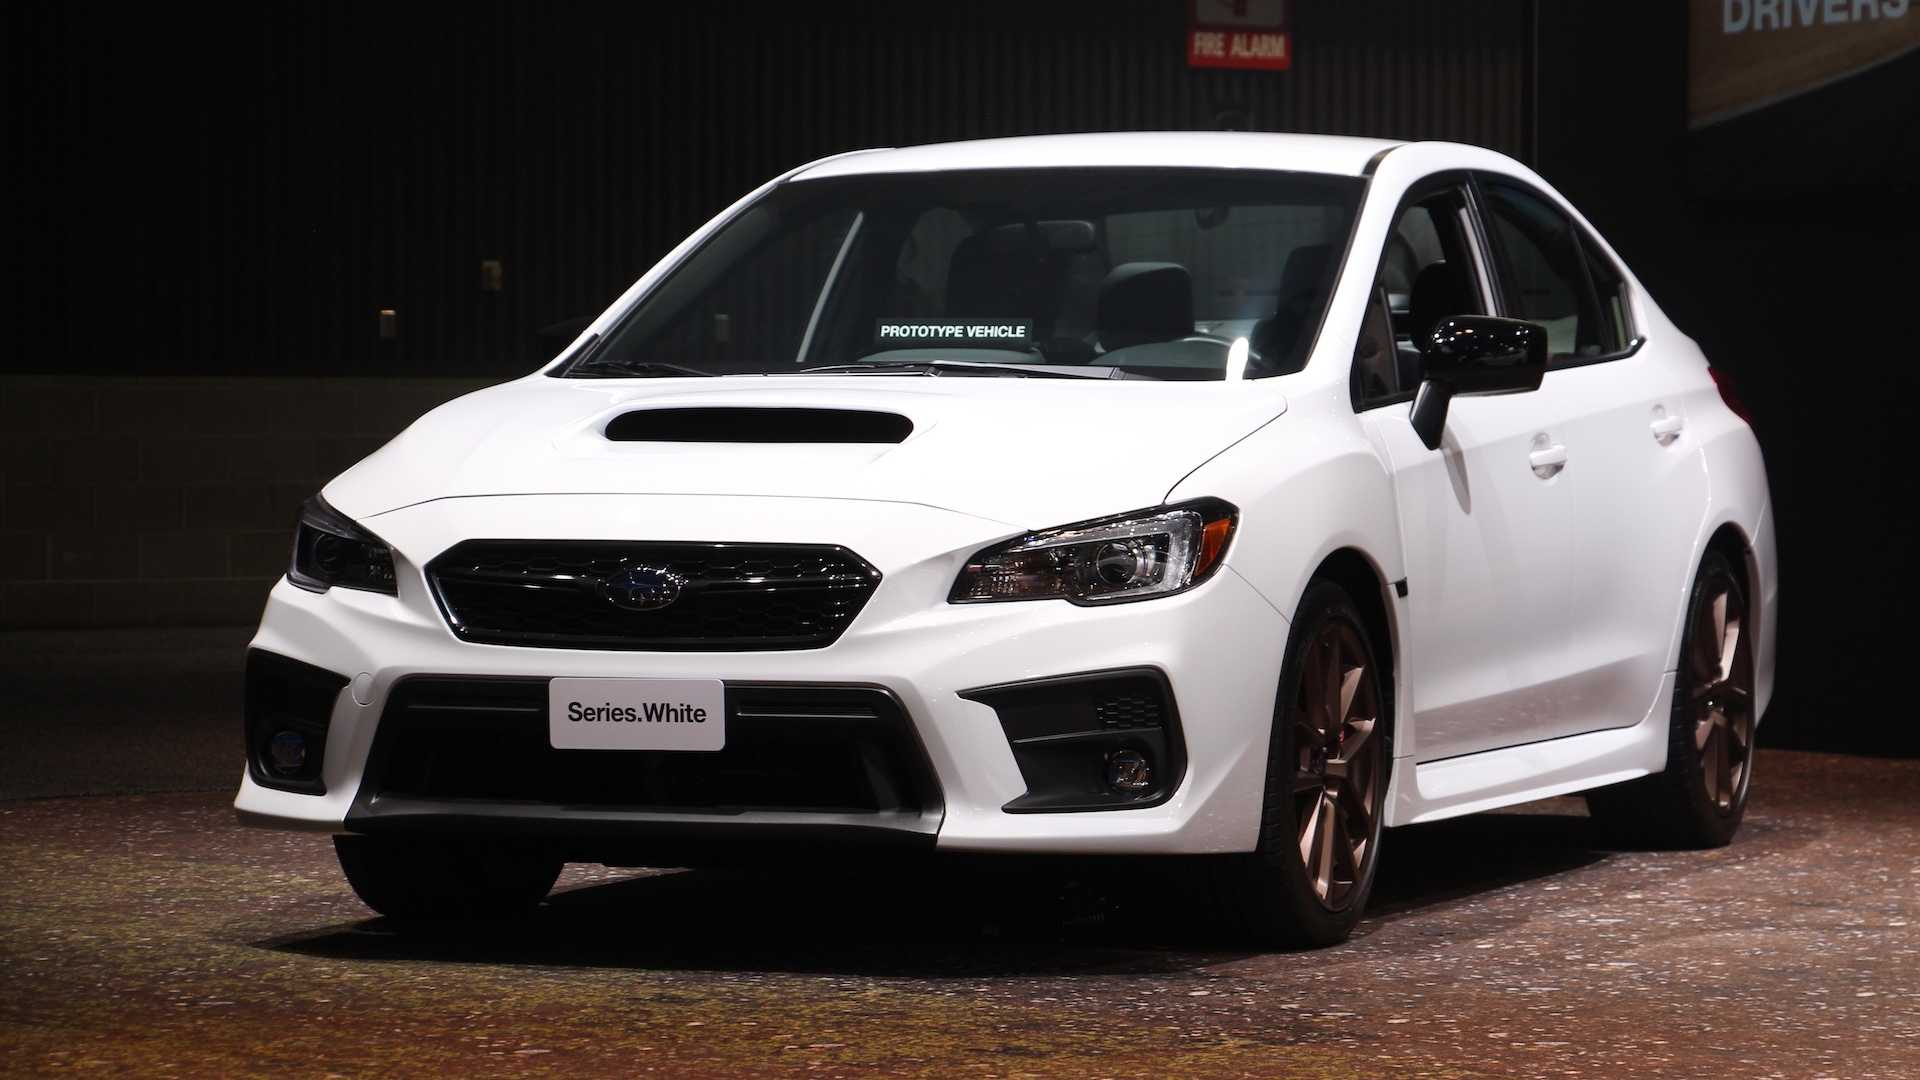 2020 Subaru Wrx Sti Series White Debut In Cool Color